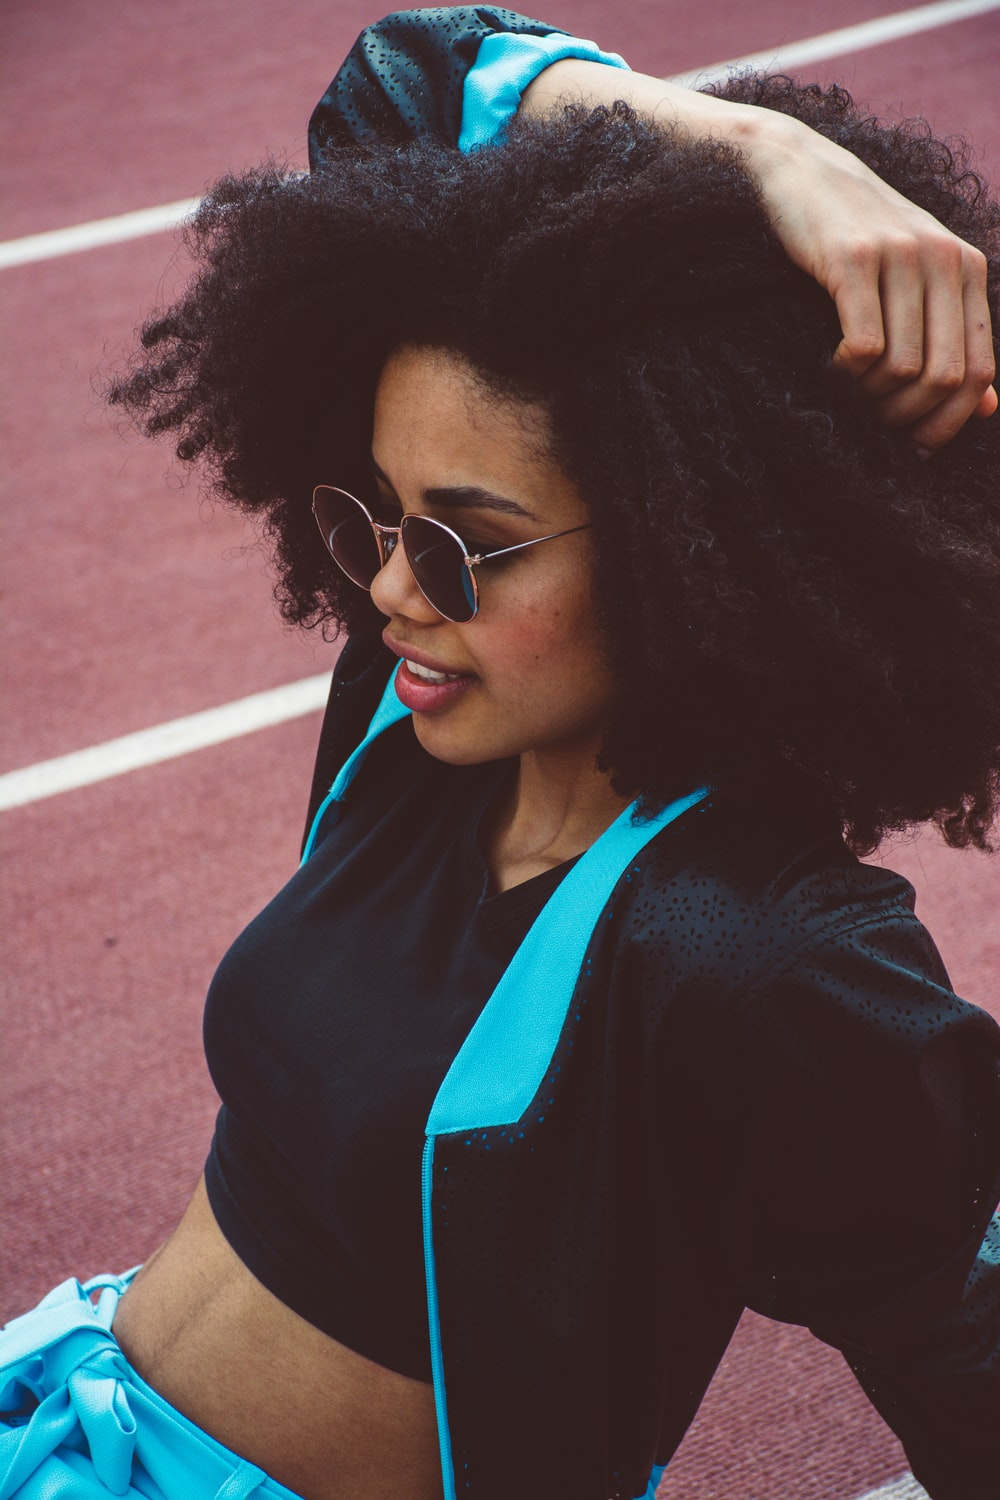 woman wearing black and teal jacket